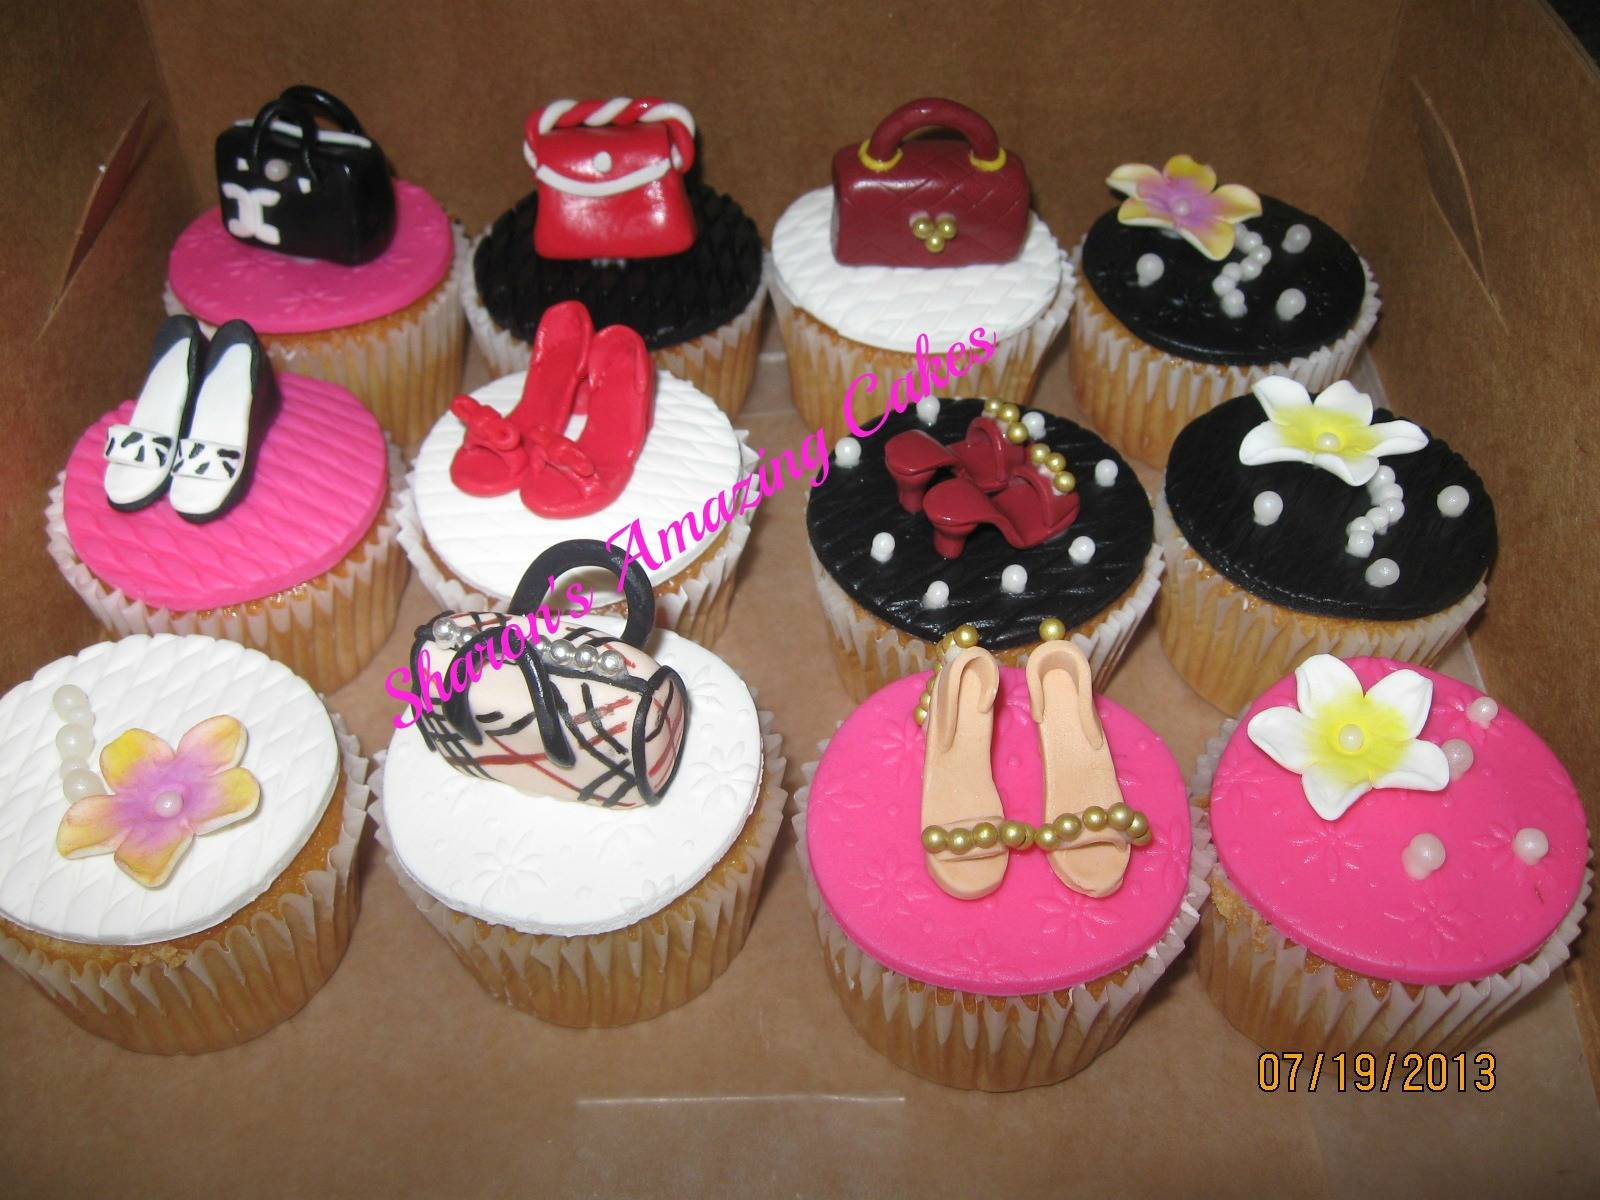 CC42 -Handbag & Shoe Fetish Cupcakes